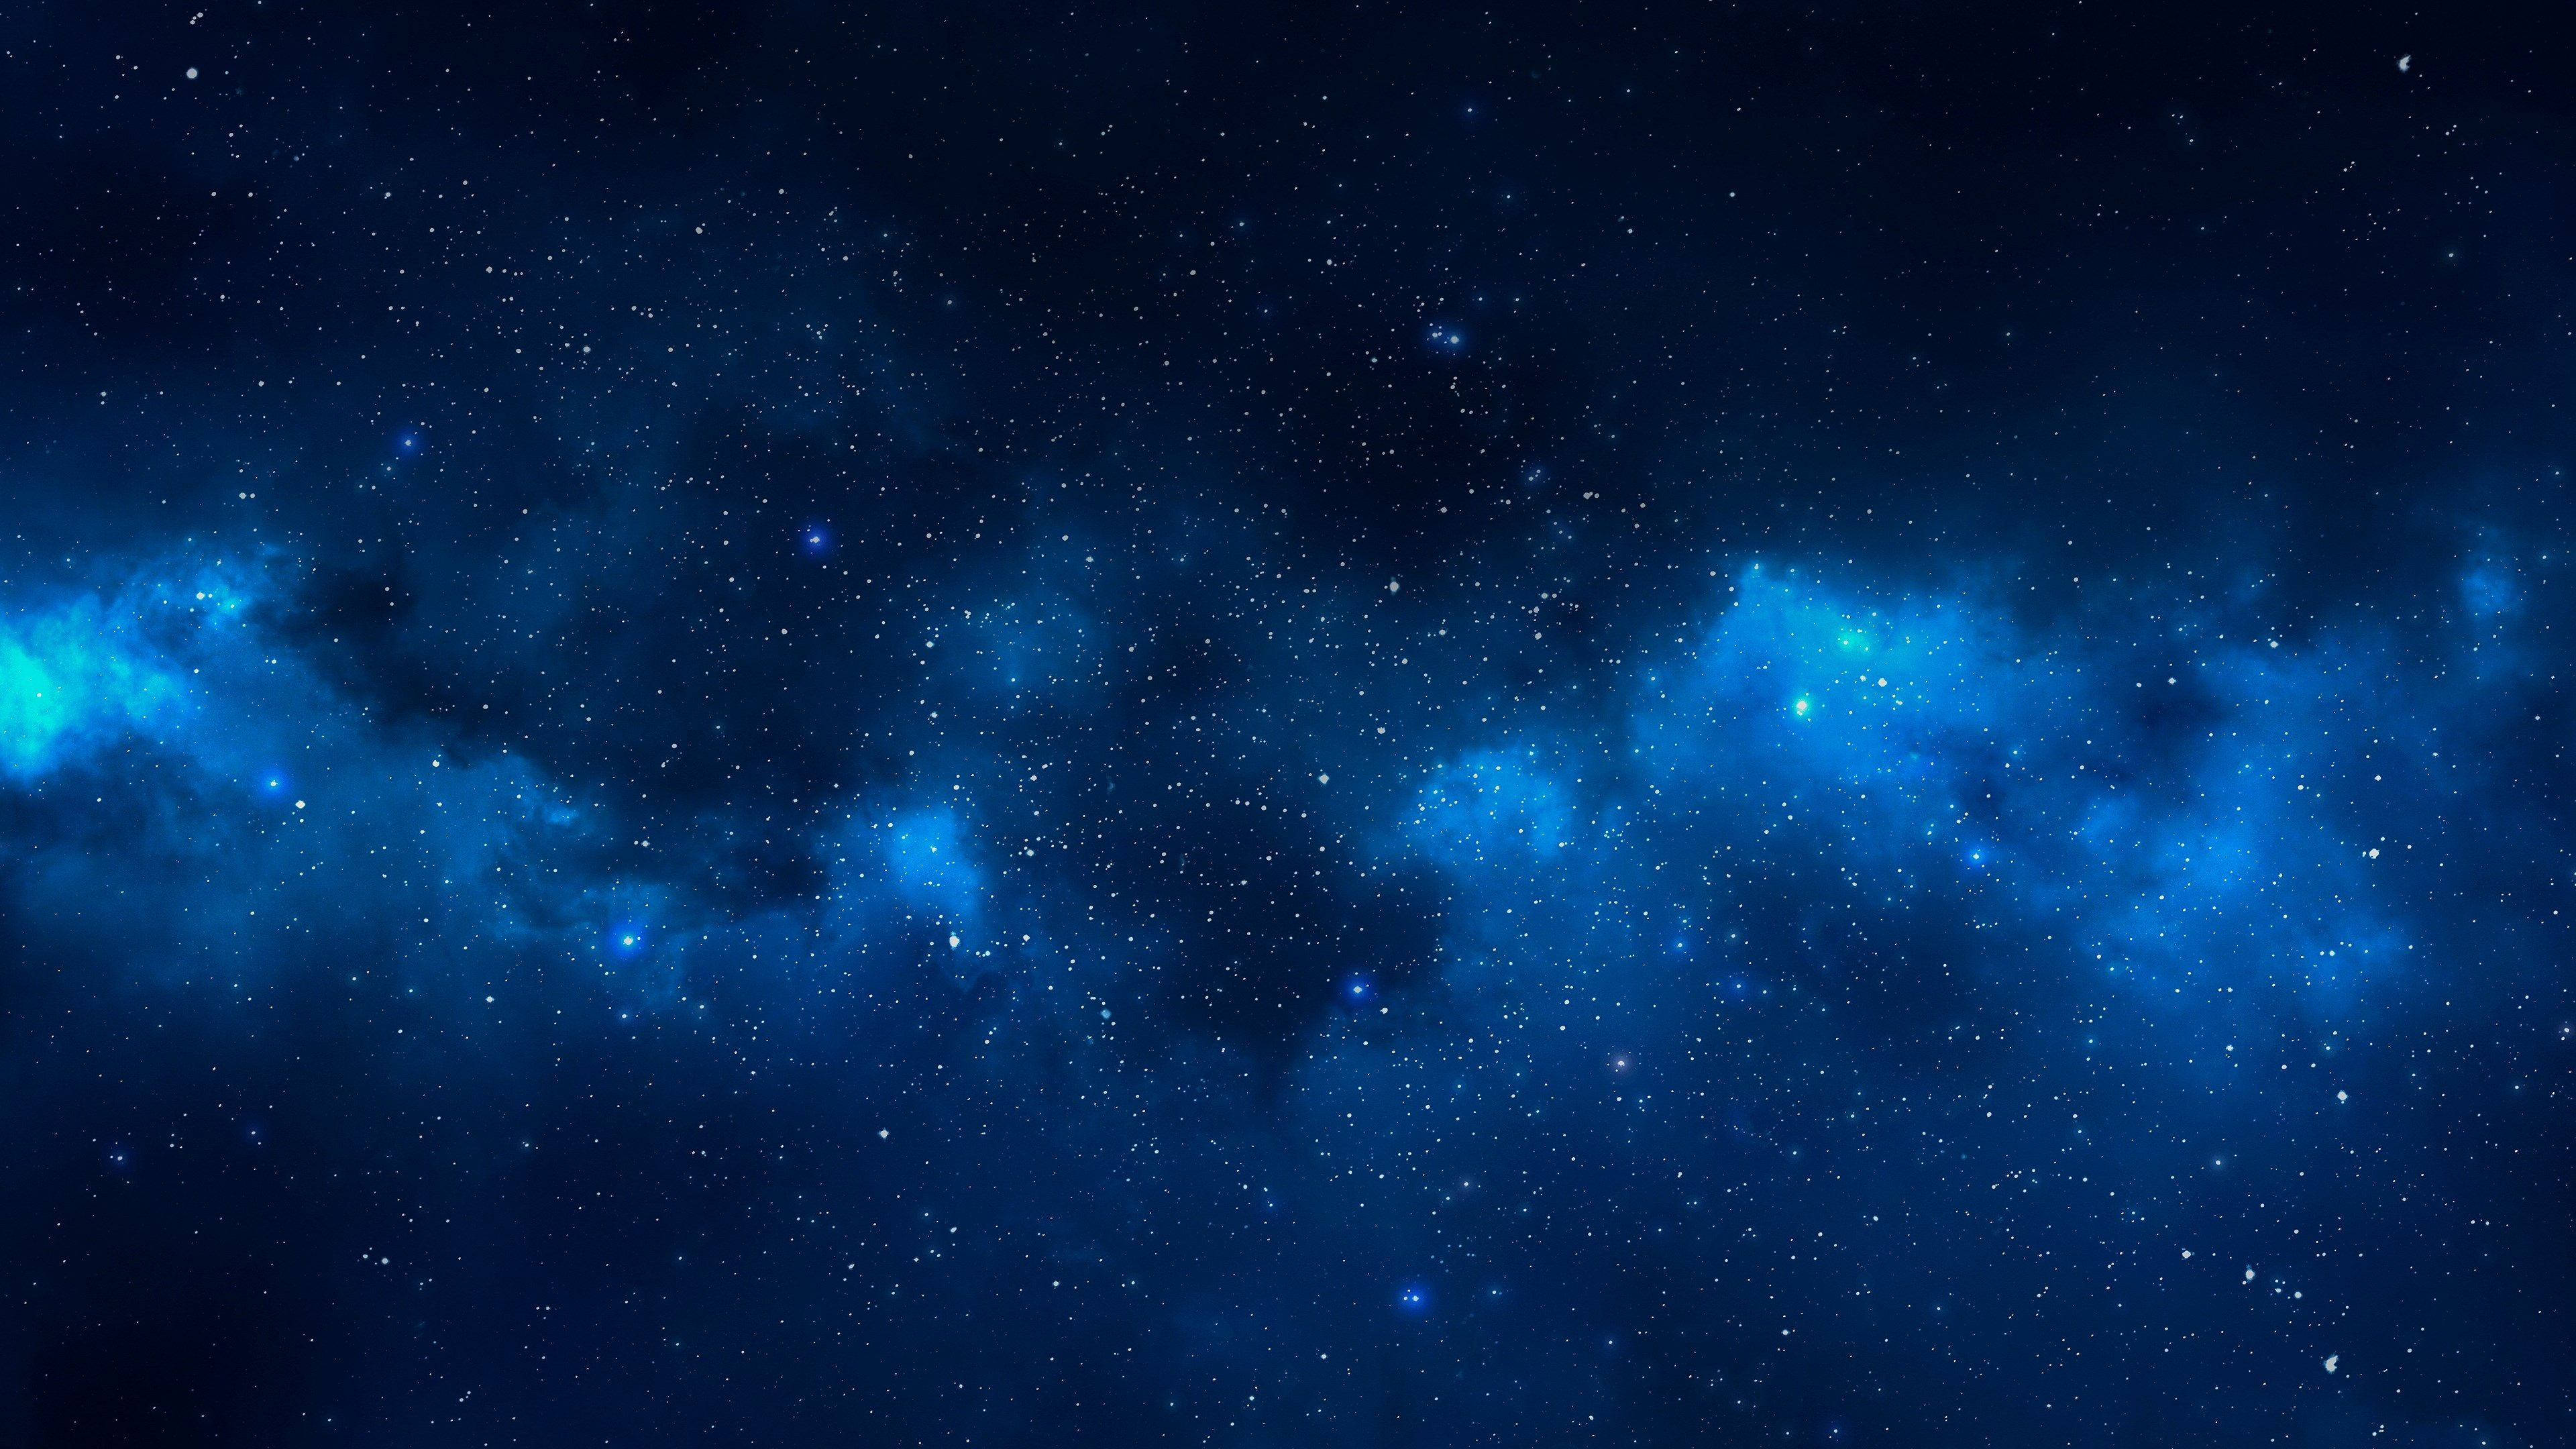 3840x2160 Stars 4k Computer Wallpaper Hd Free Download Computer Wallpaper Hd Galaxy Wallpaper Blue Galaxy Wallpaper